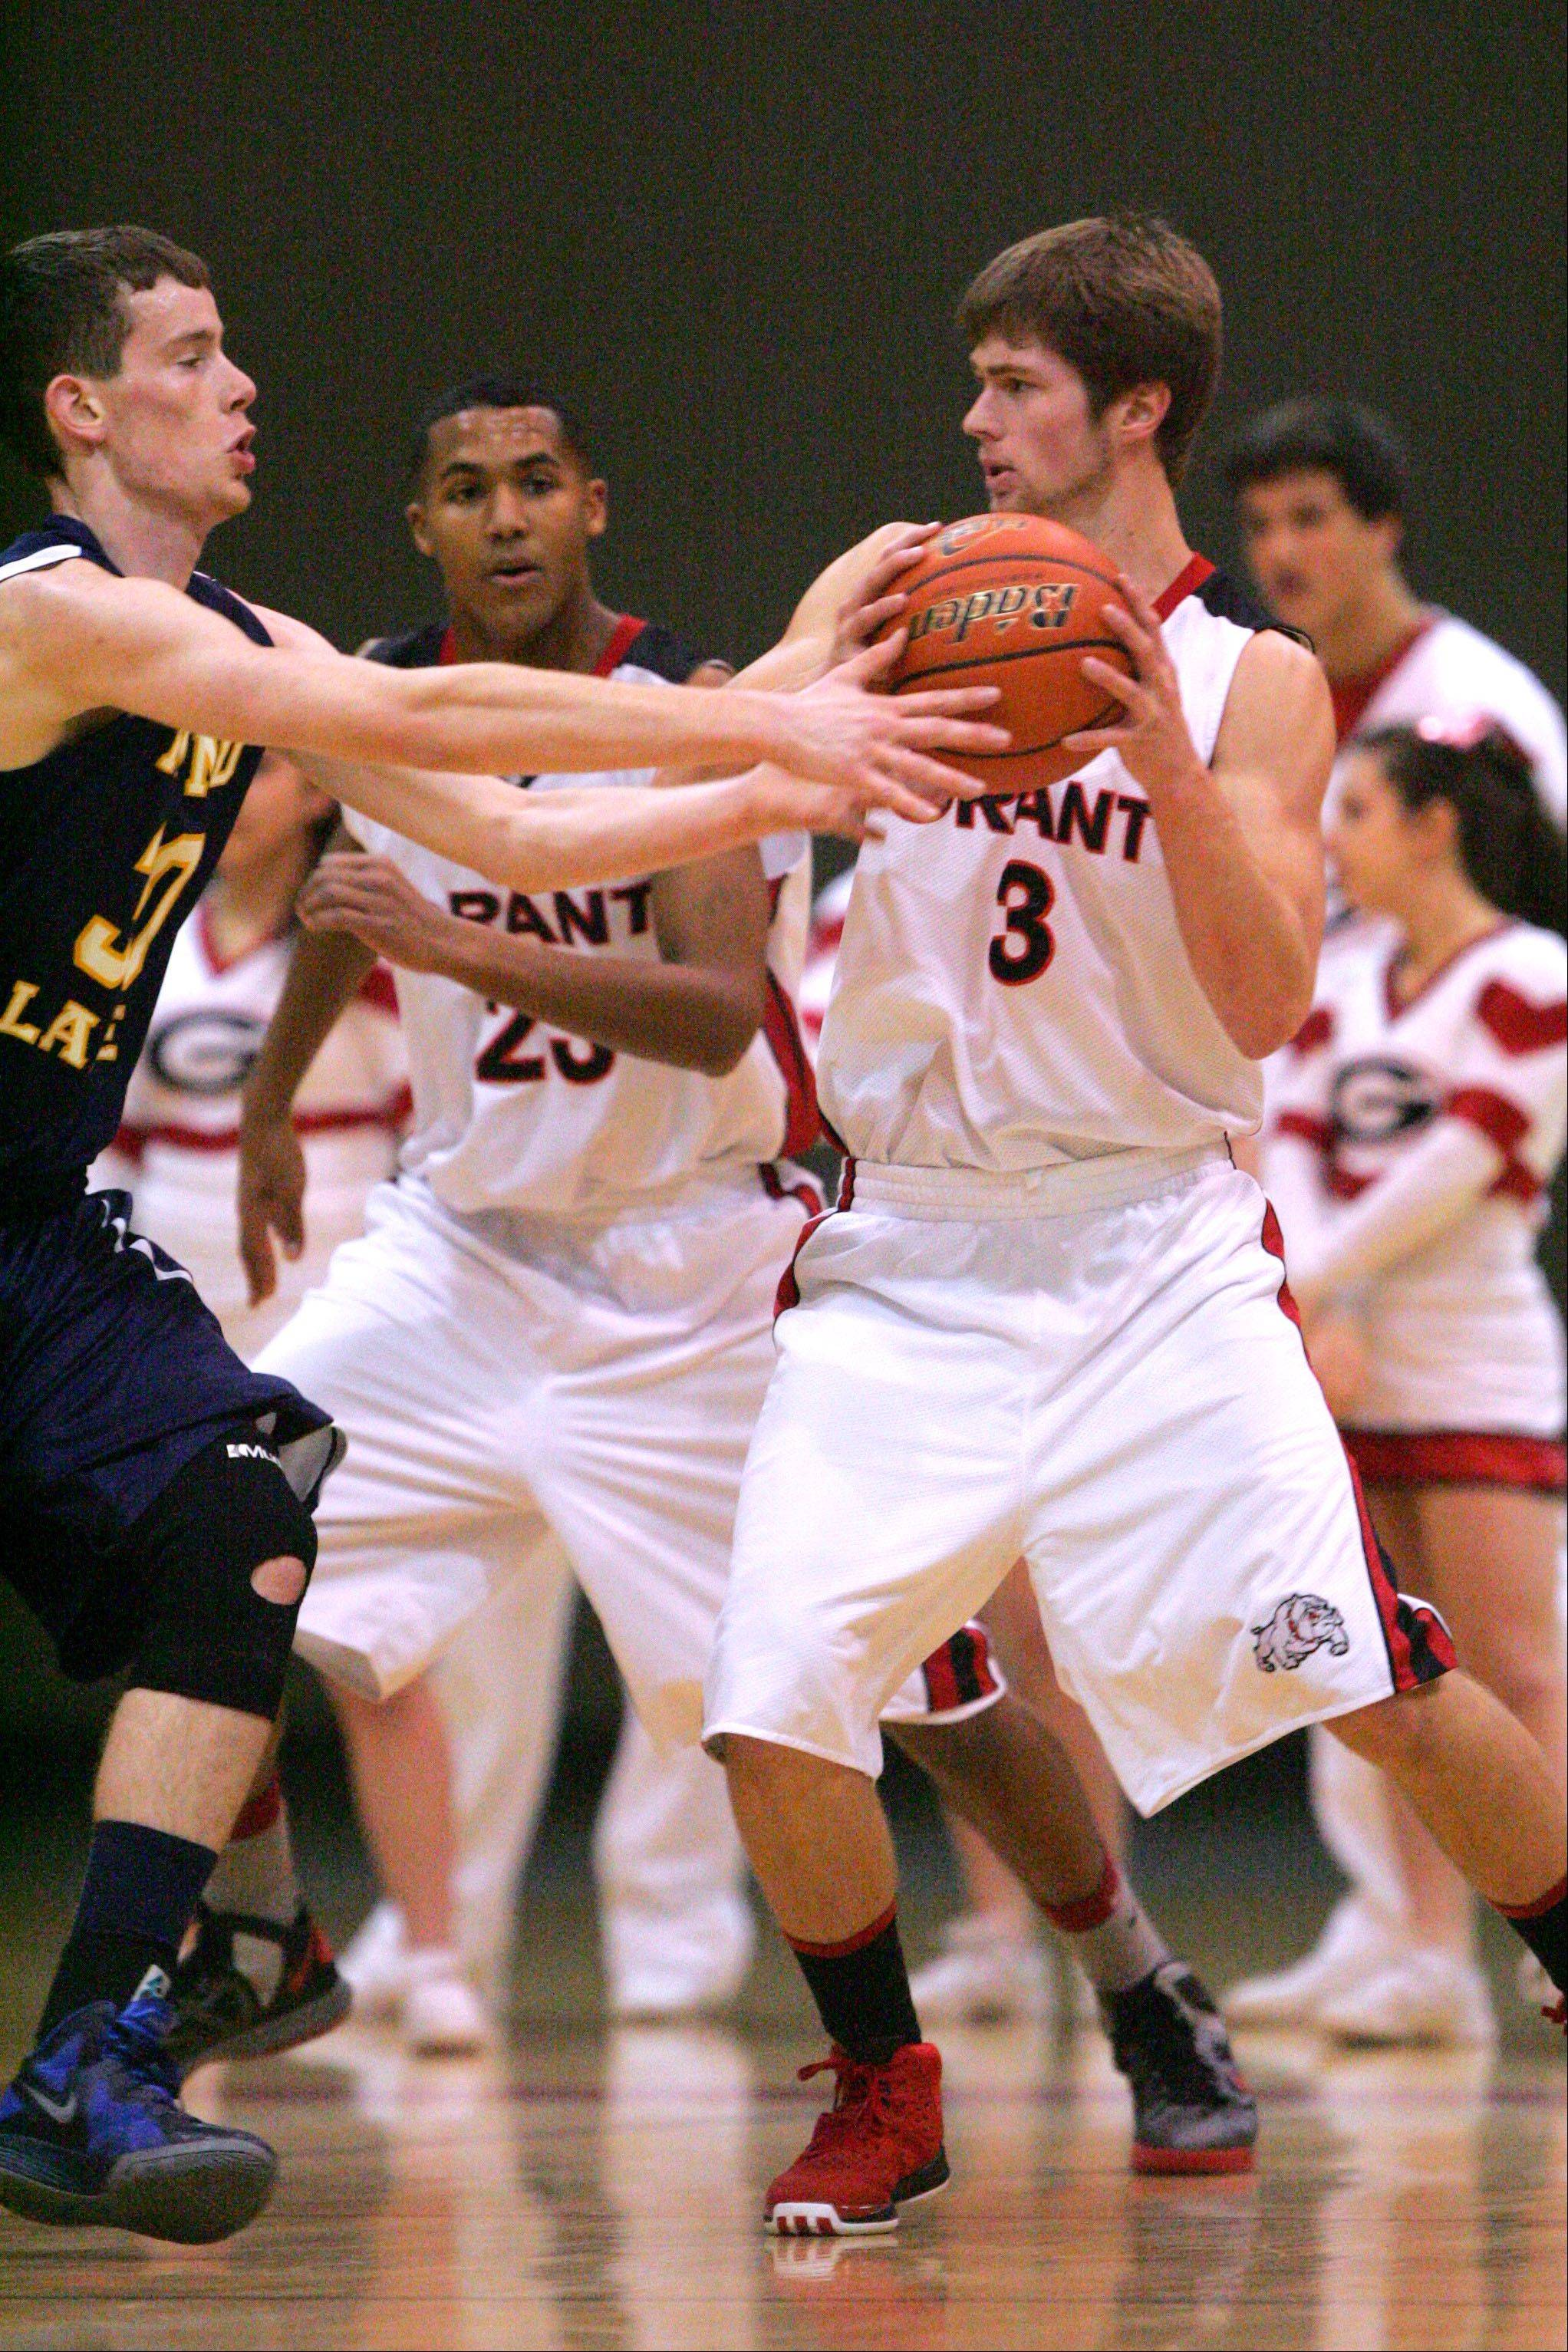 Images from the Round Lake vs. Grant boys basketball game on Wednesday, December 26 in Fox Lake.